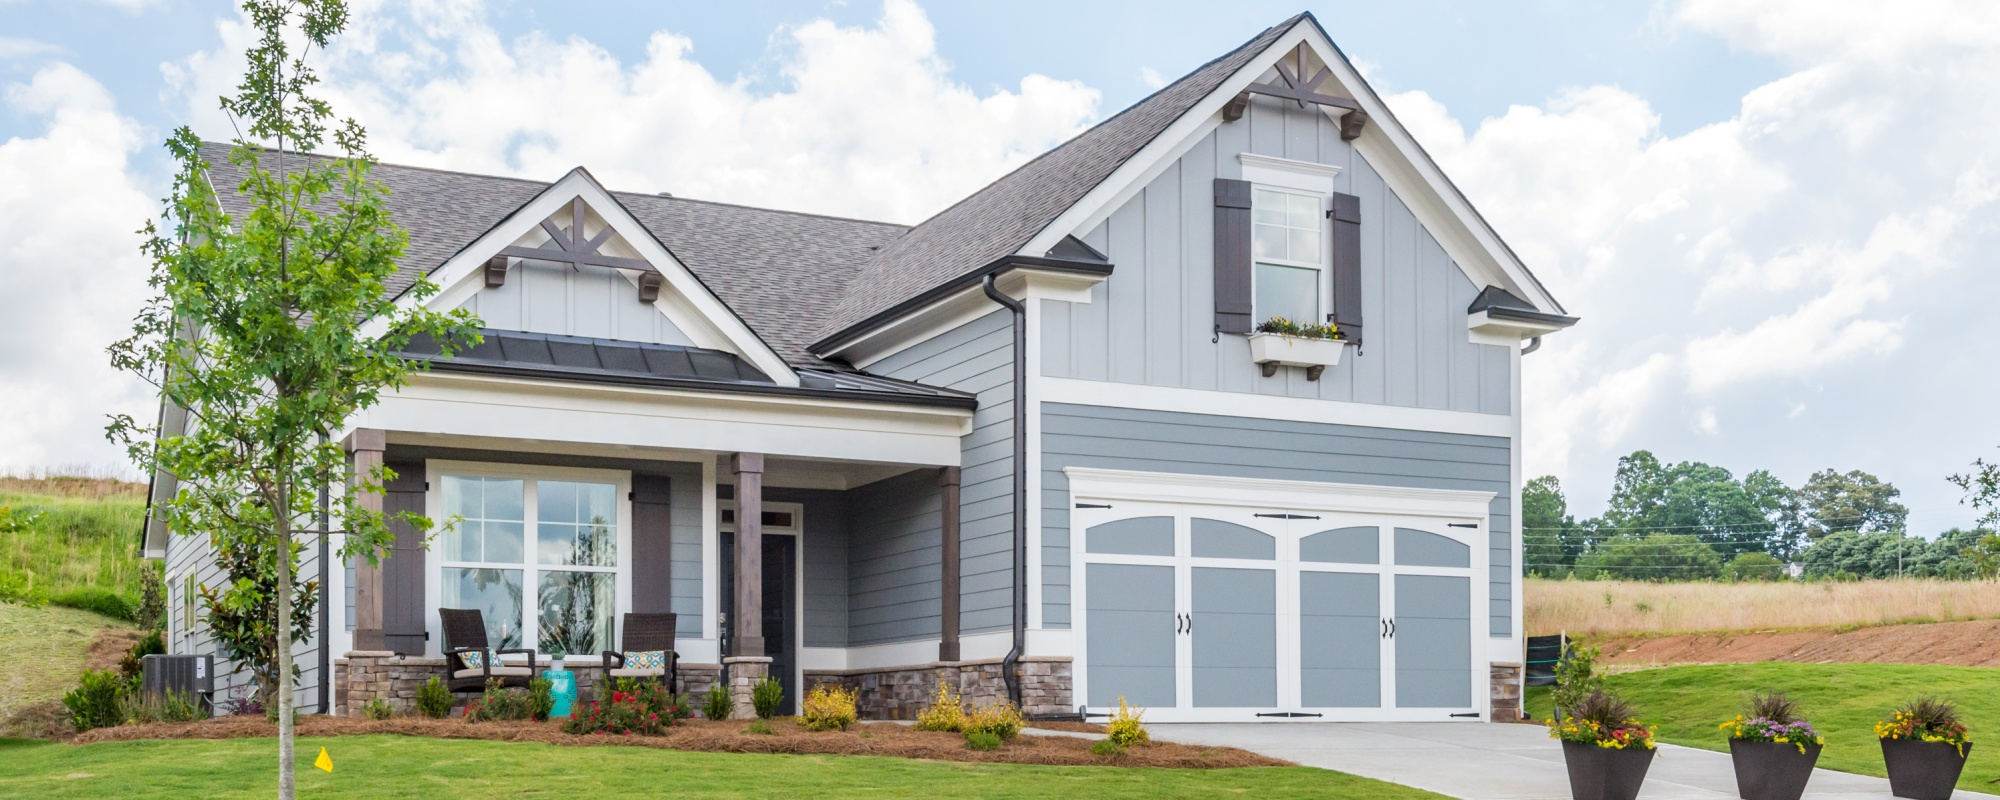 Edgewater | New Homes Cherokee | Stonecrest Homes